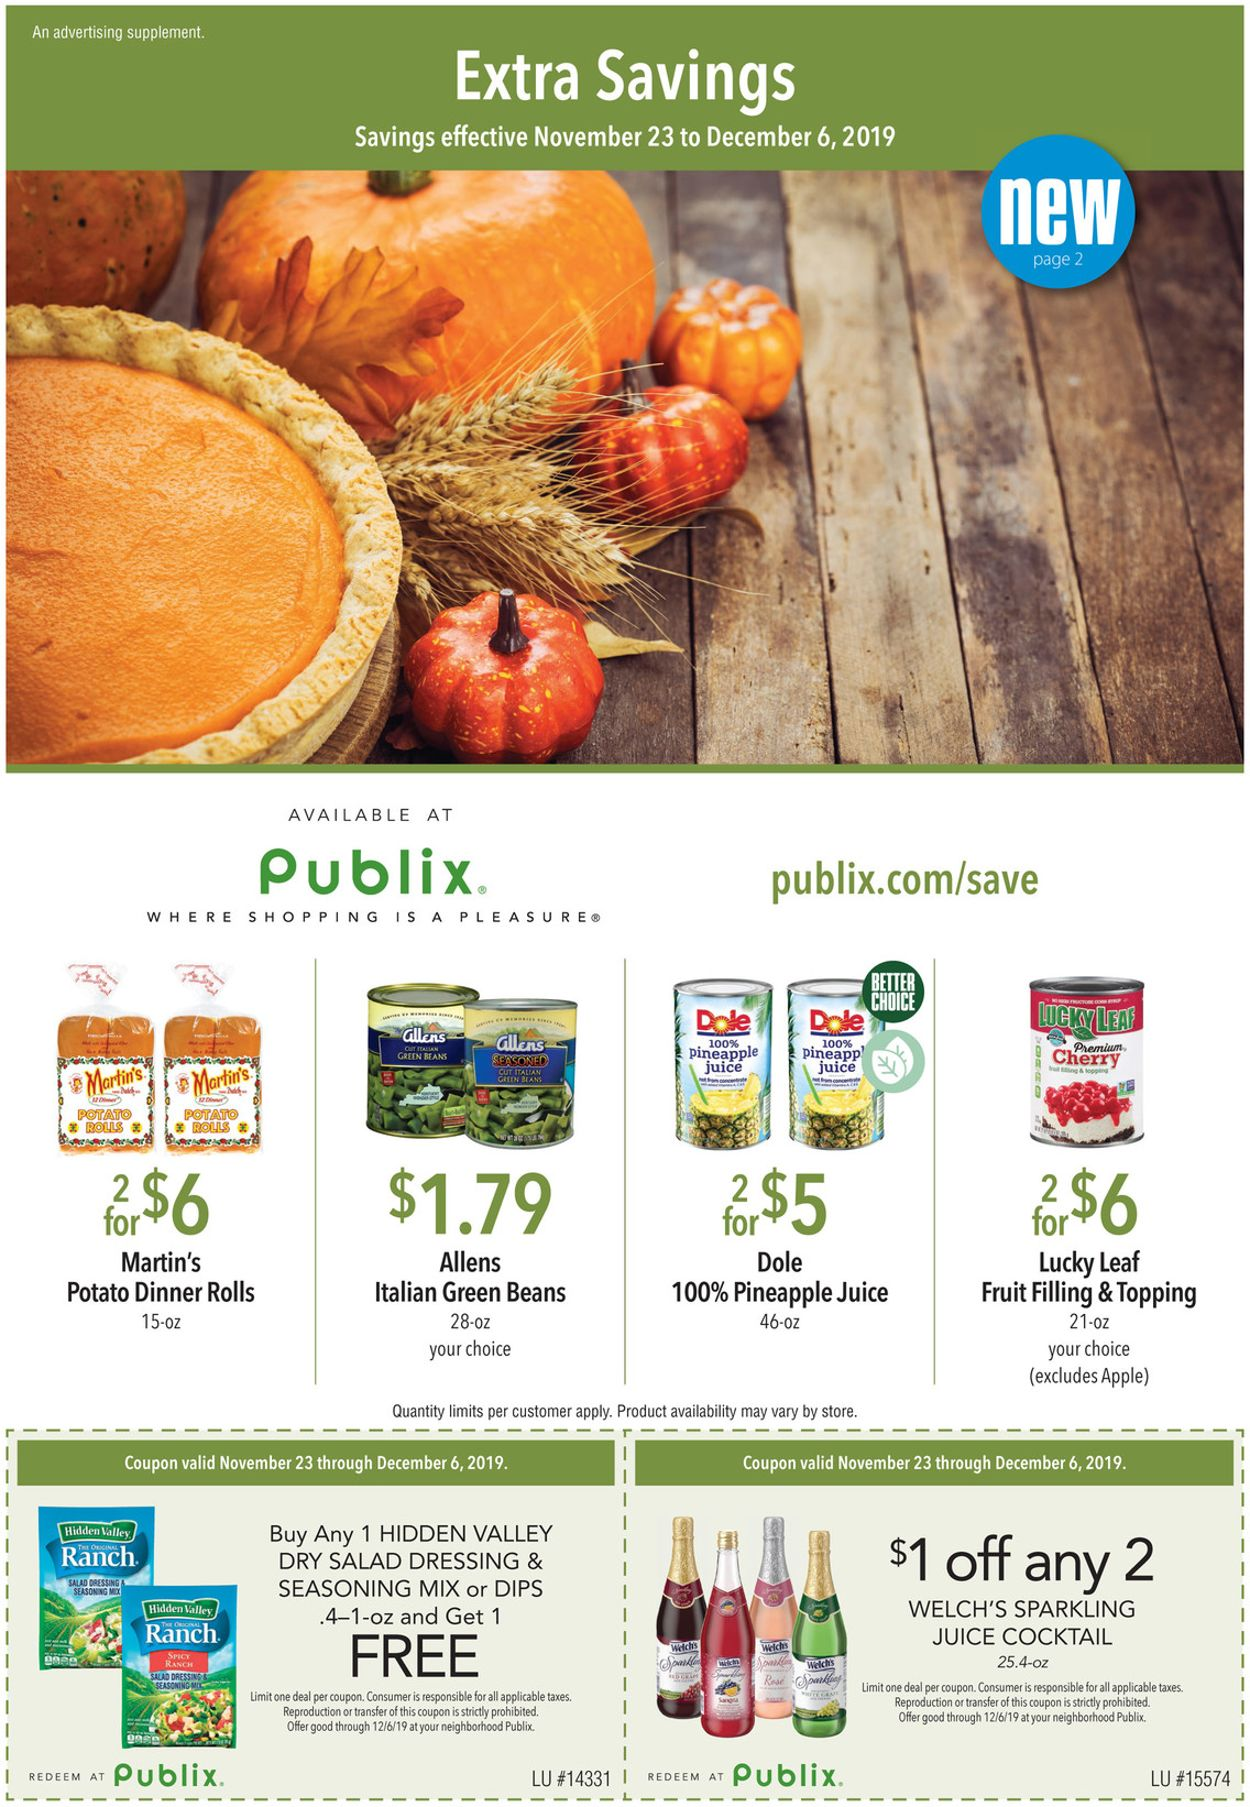 Publix Current weekly ad 11/23 - 12/06